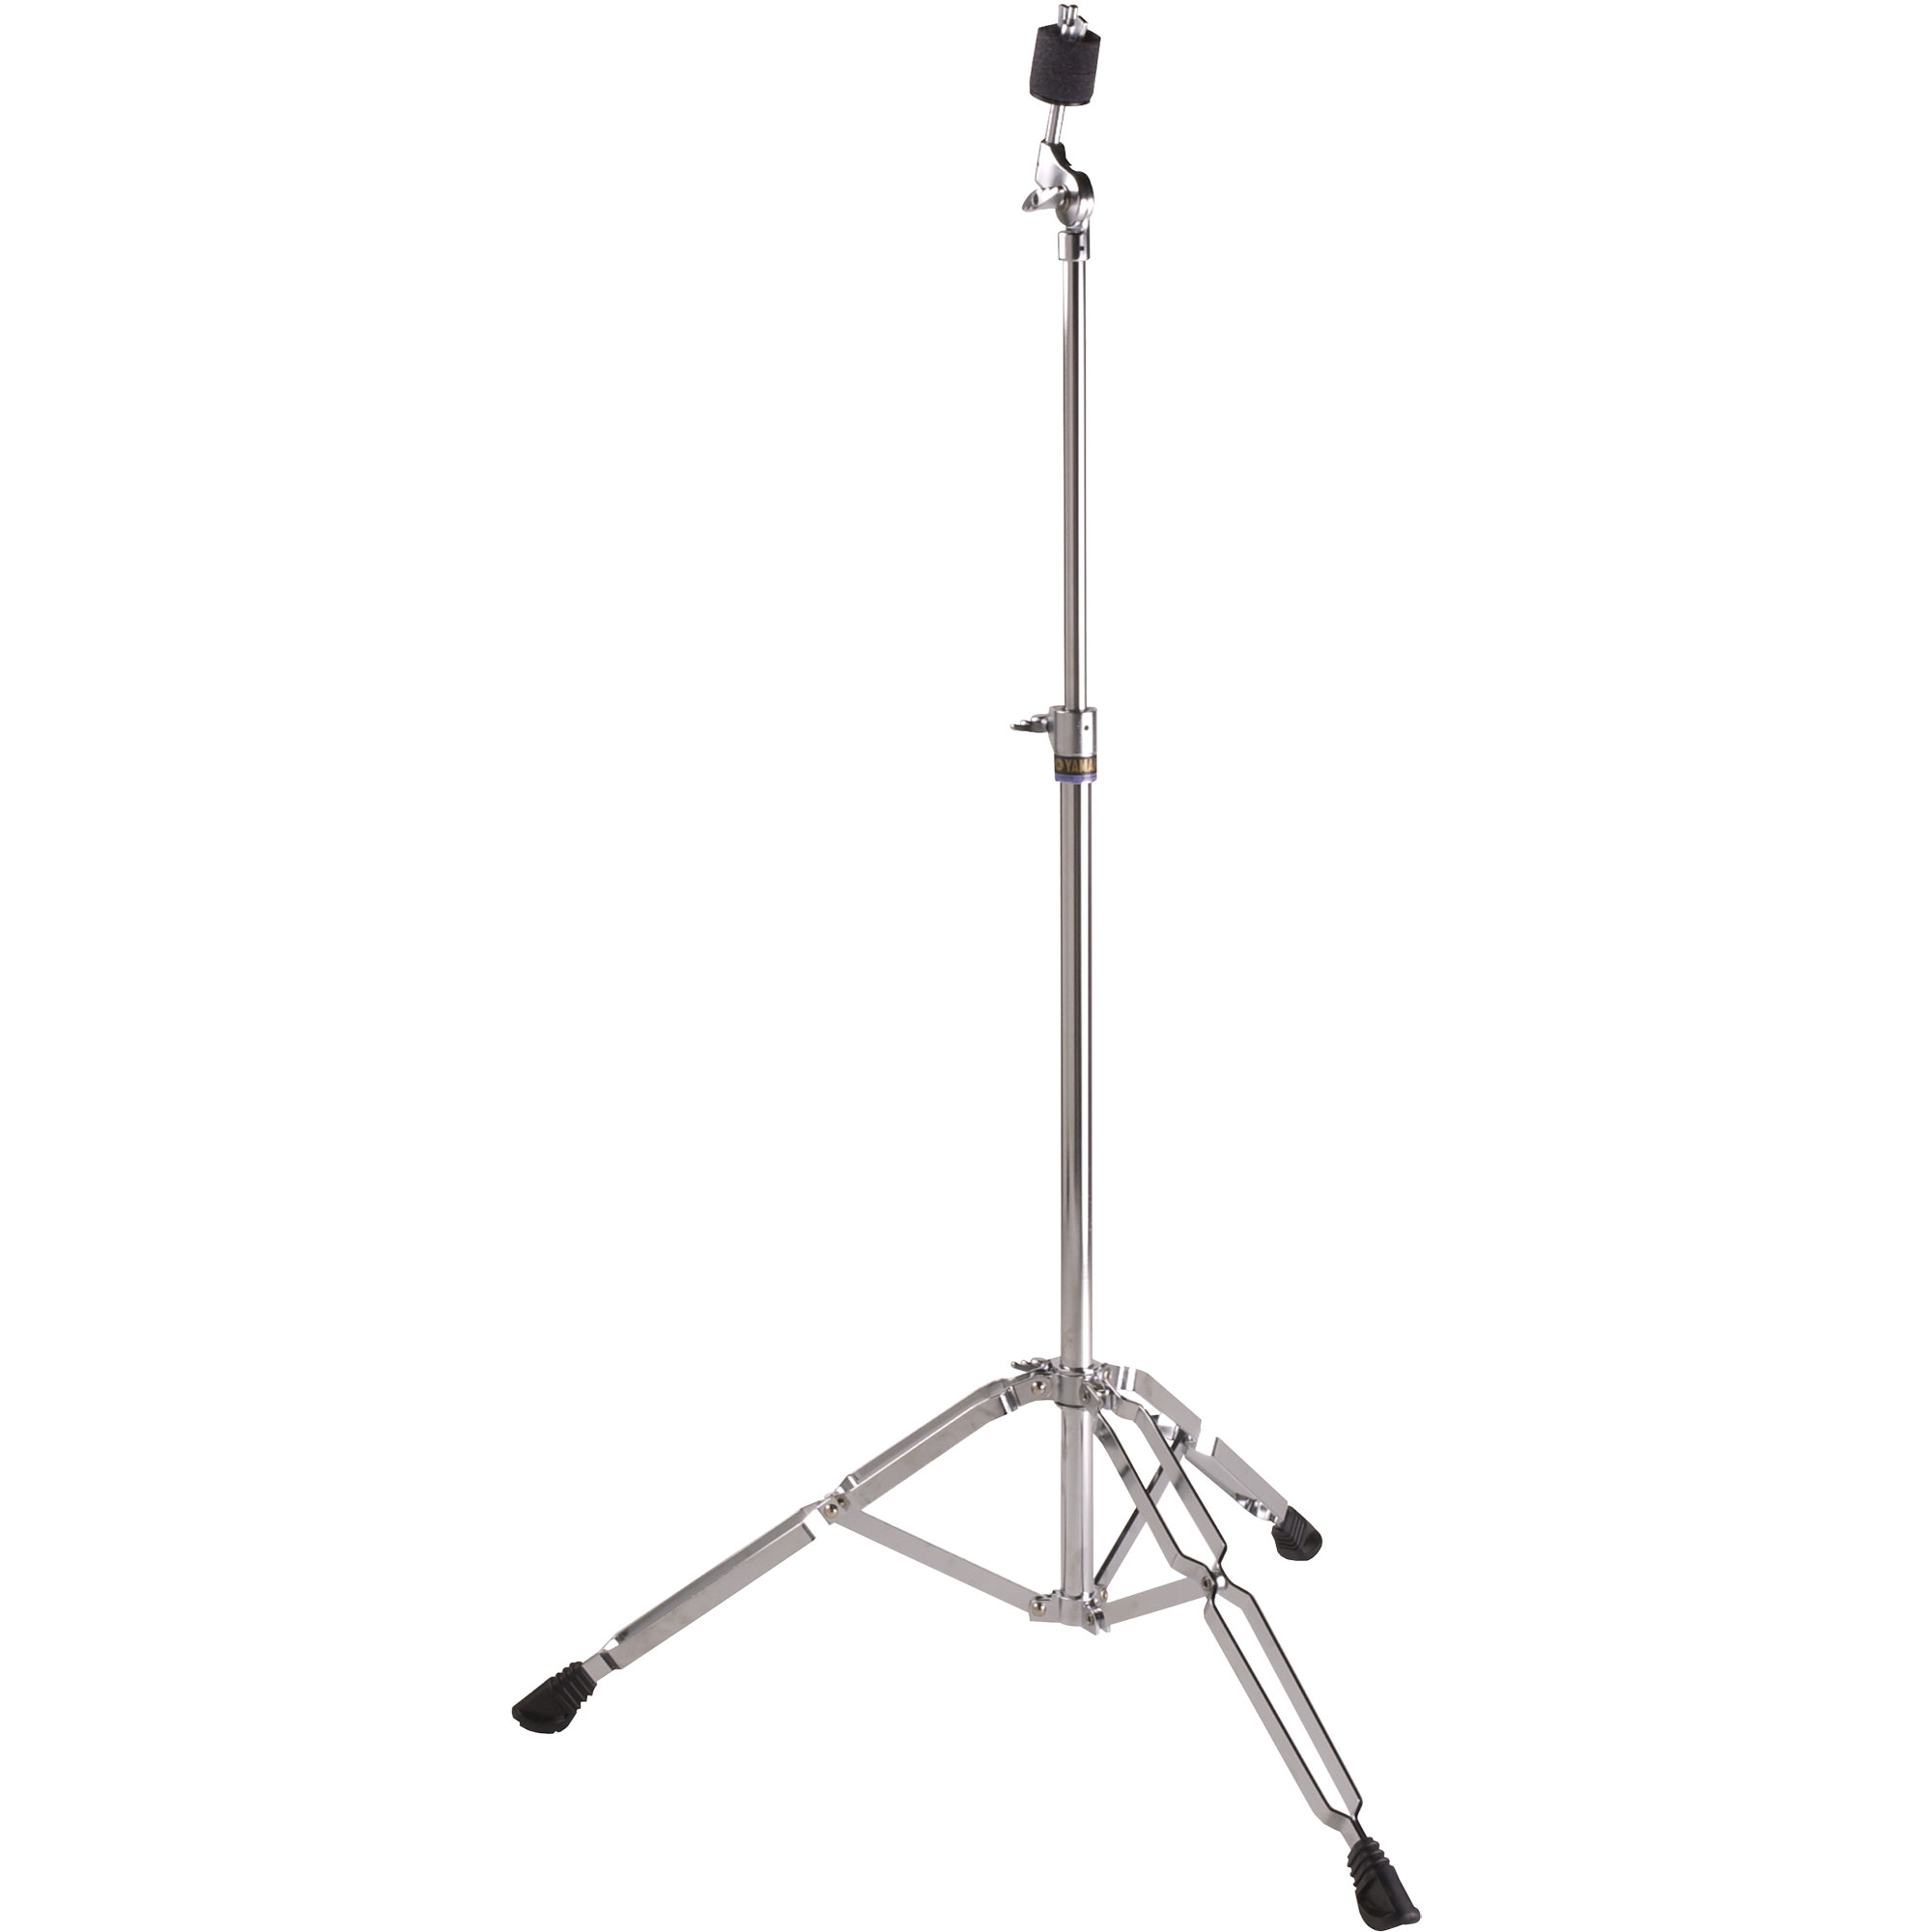 Yamaha Double-Braced Lightweight Straight Cymbal Stand